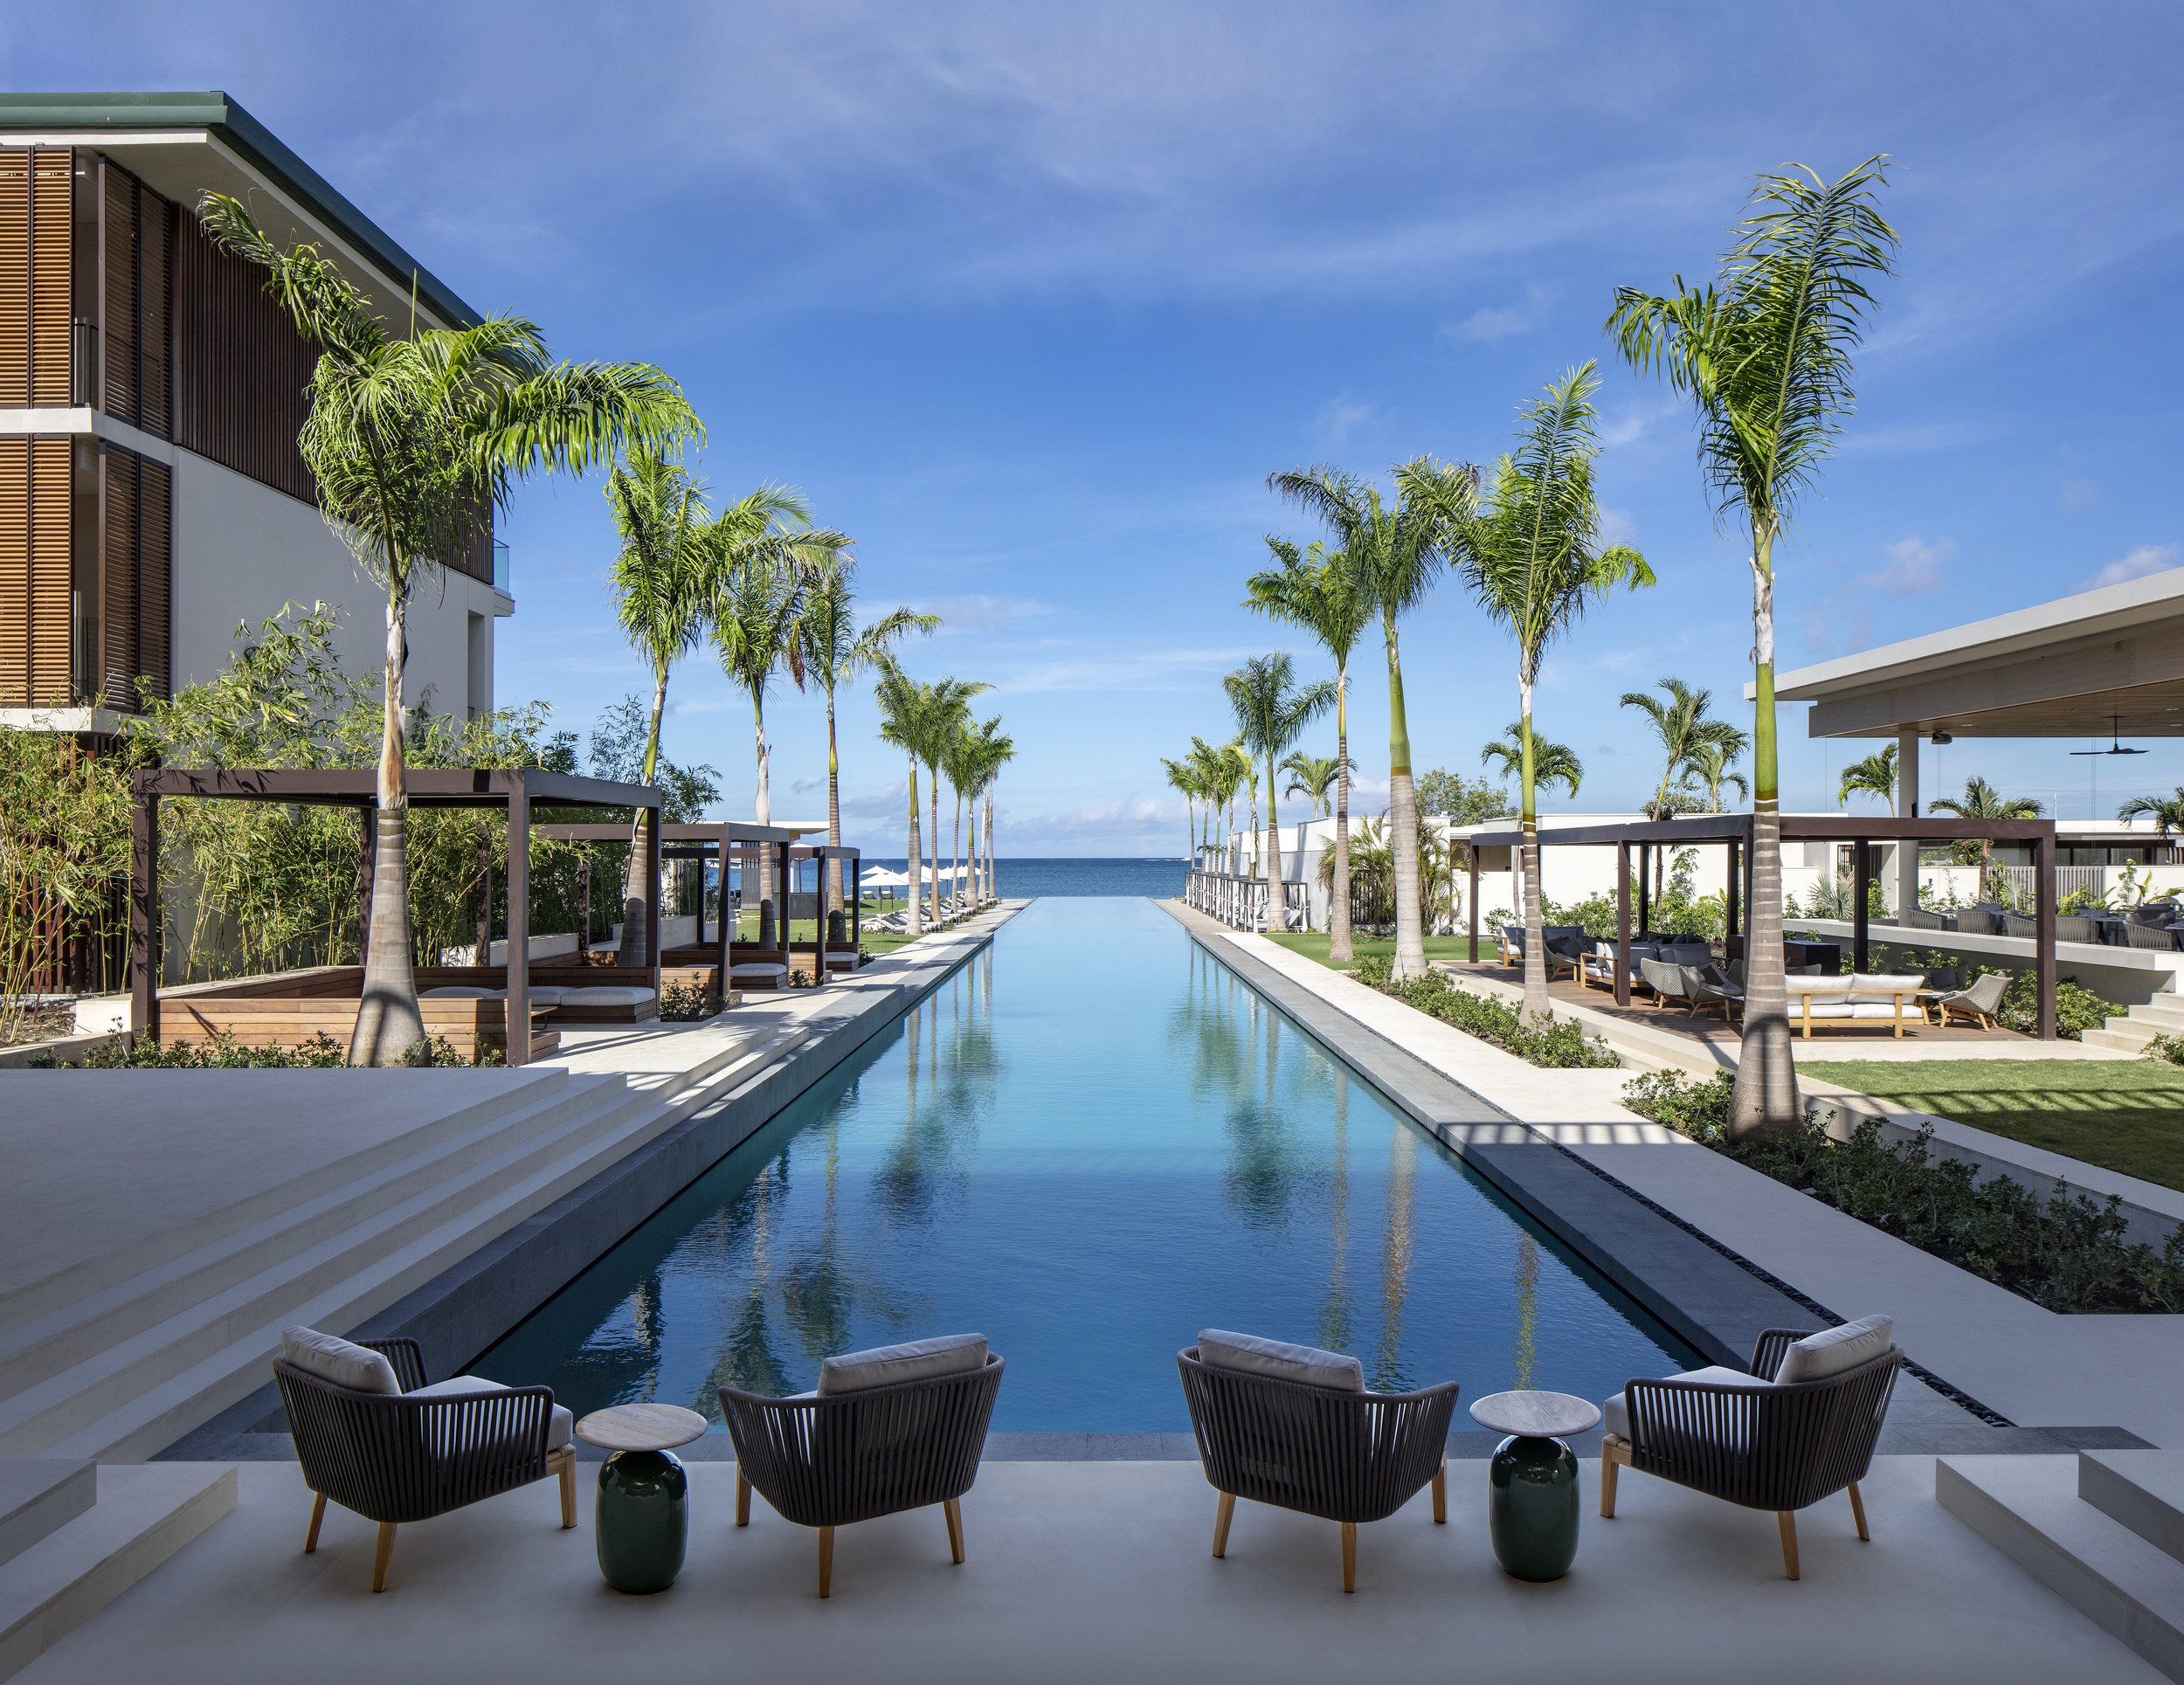 Pool from Lobby by Day.jpg